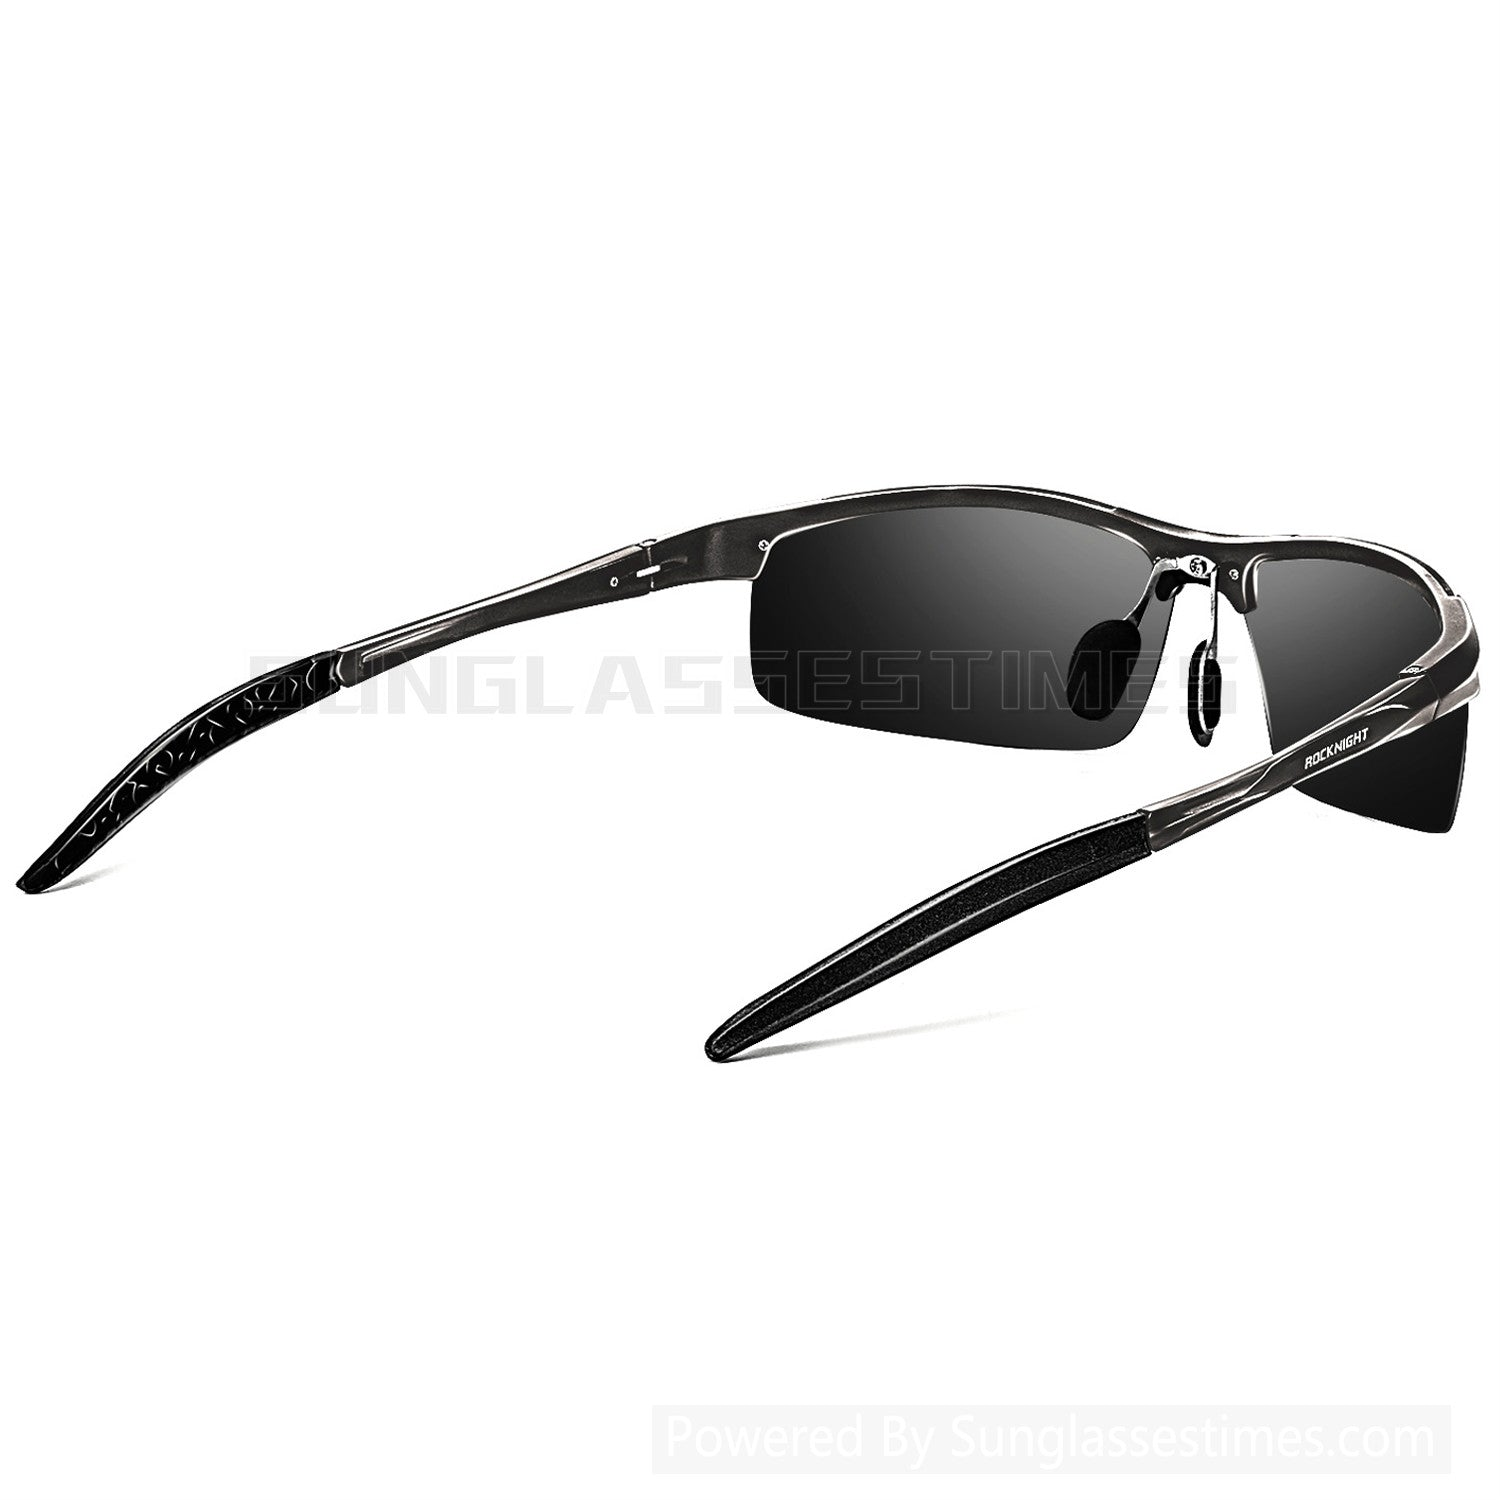 HD Polarized Sunglasses Mg-al for Golf Fish Motocycle Driving